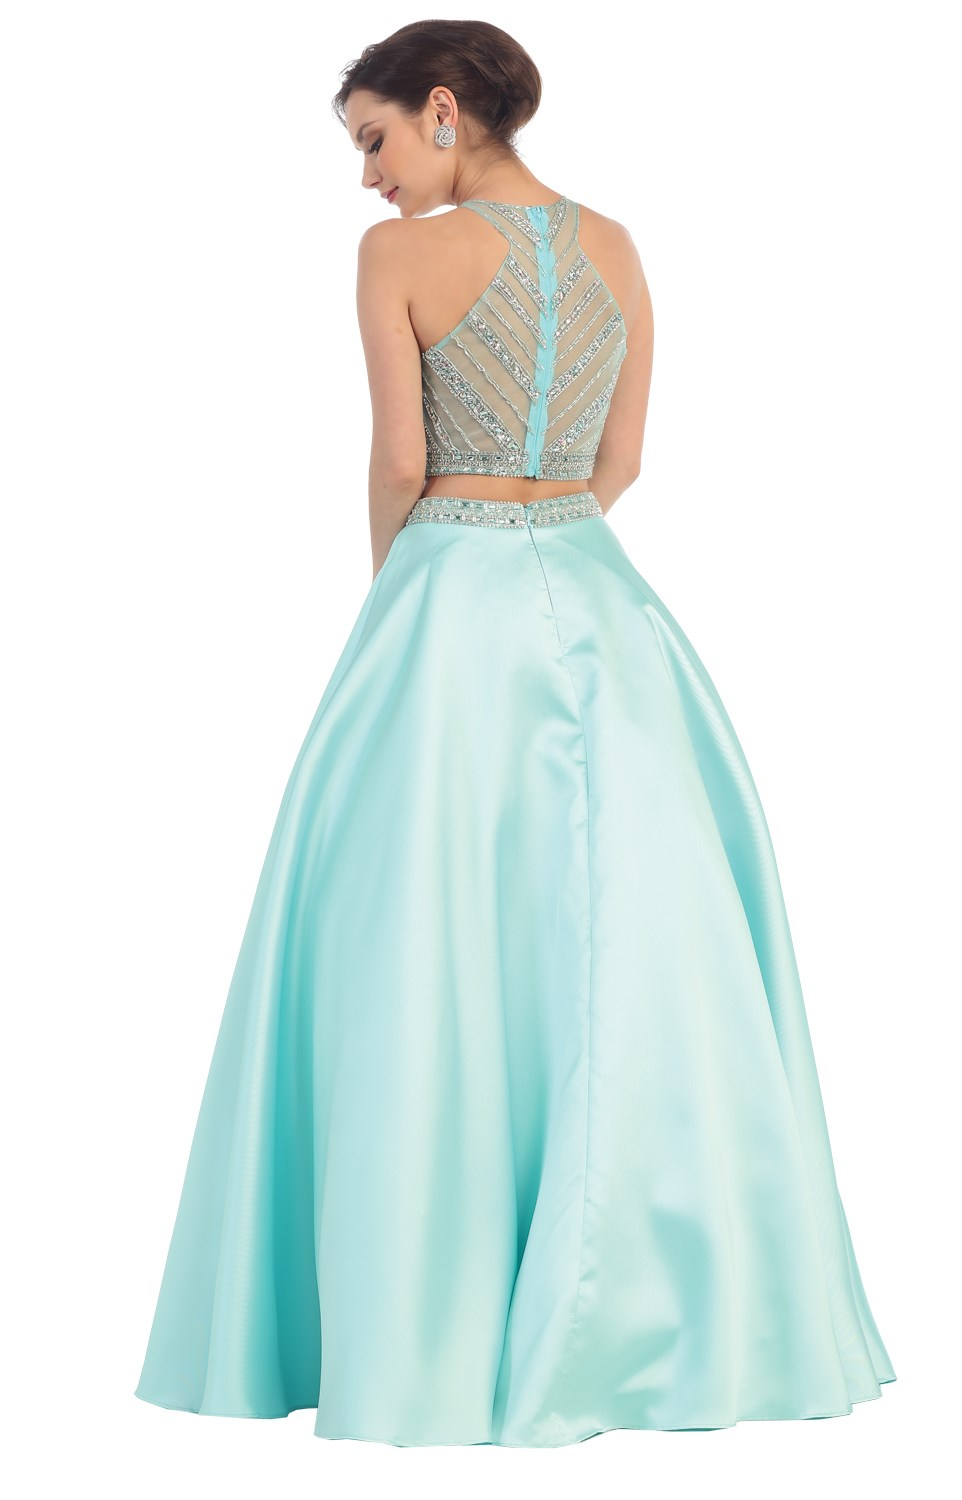 Cinderella Midriff Sexy Ball Gown Long Prom Cocktail Dresses ...